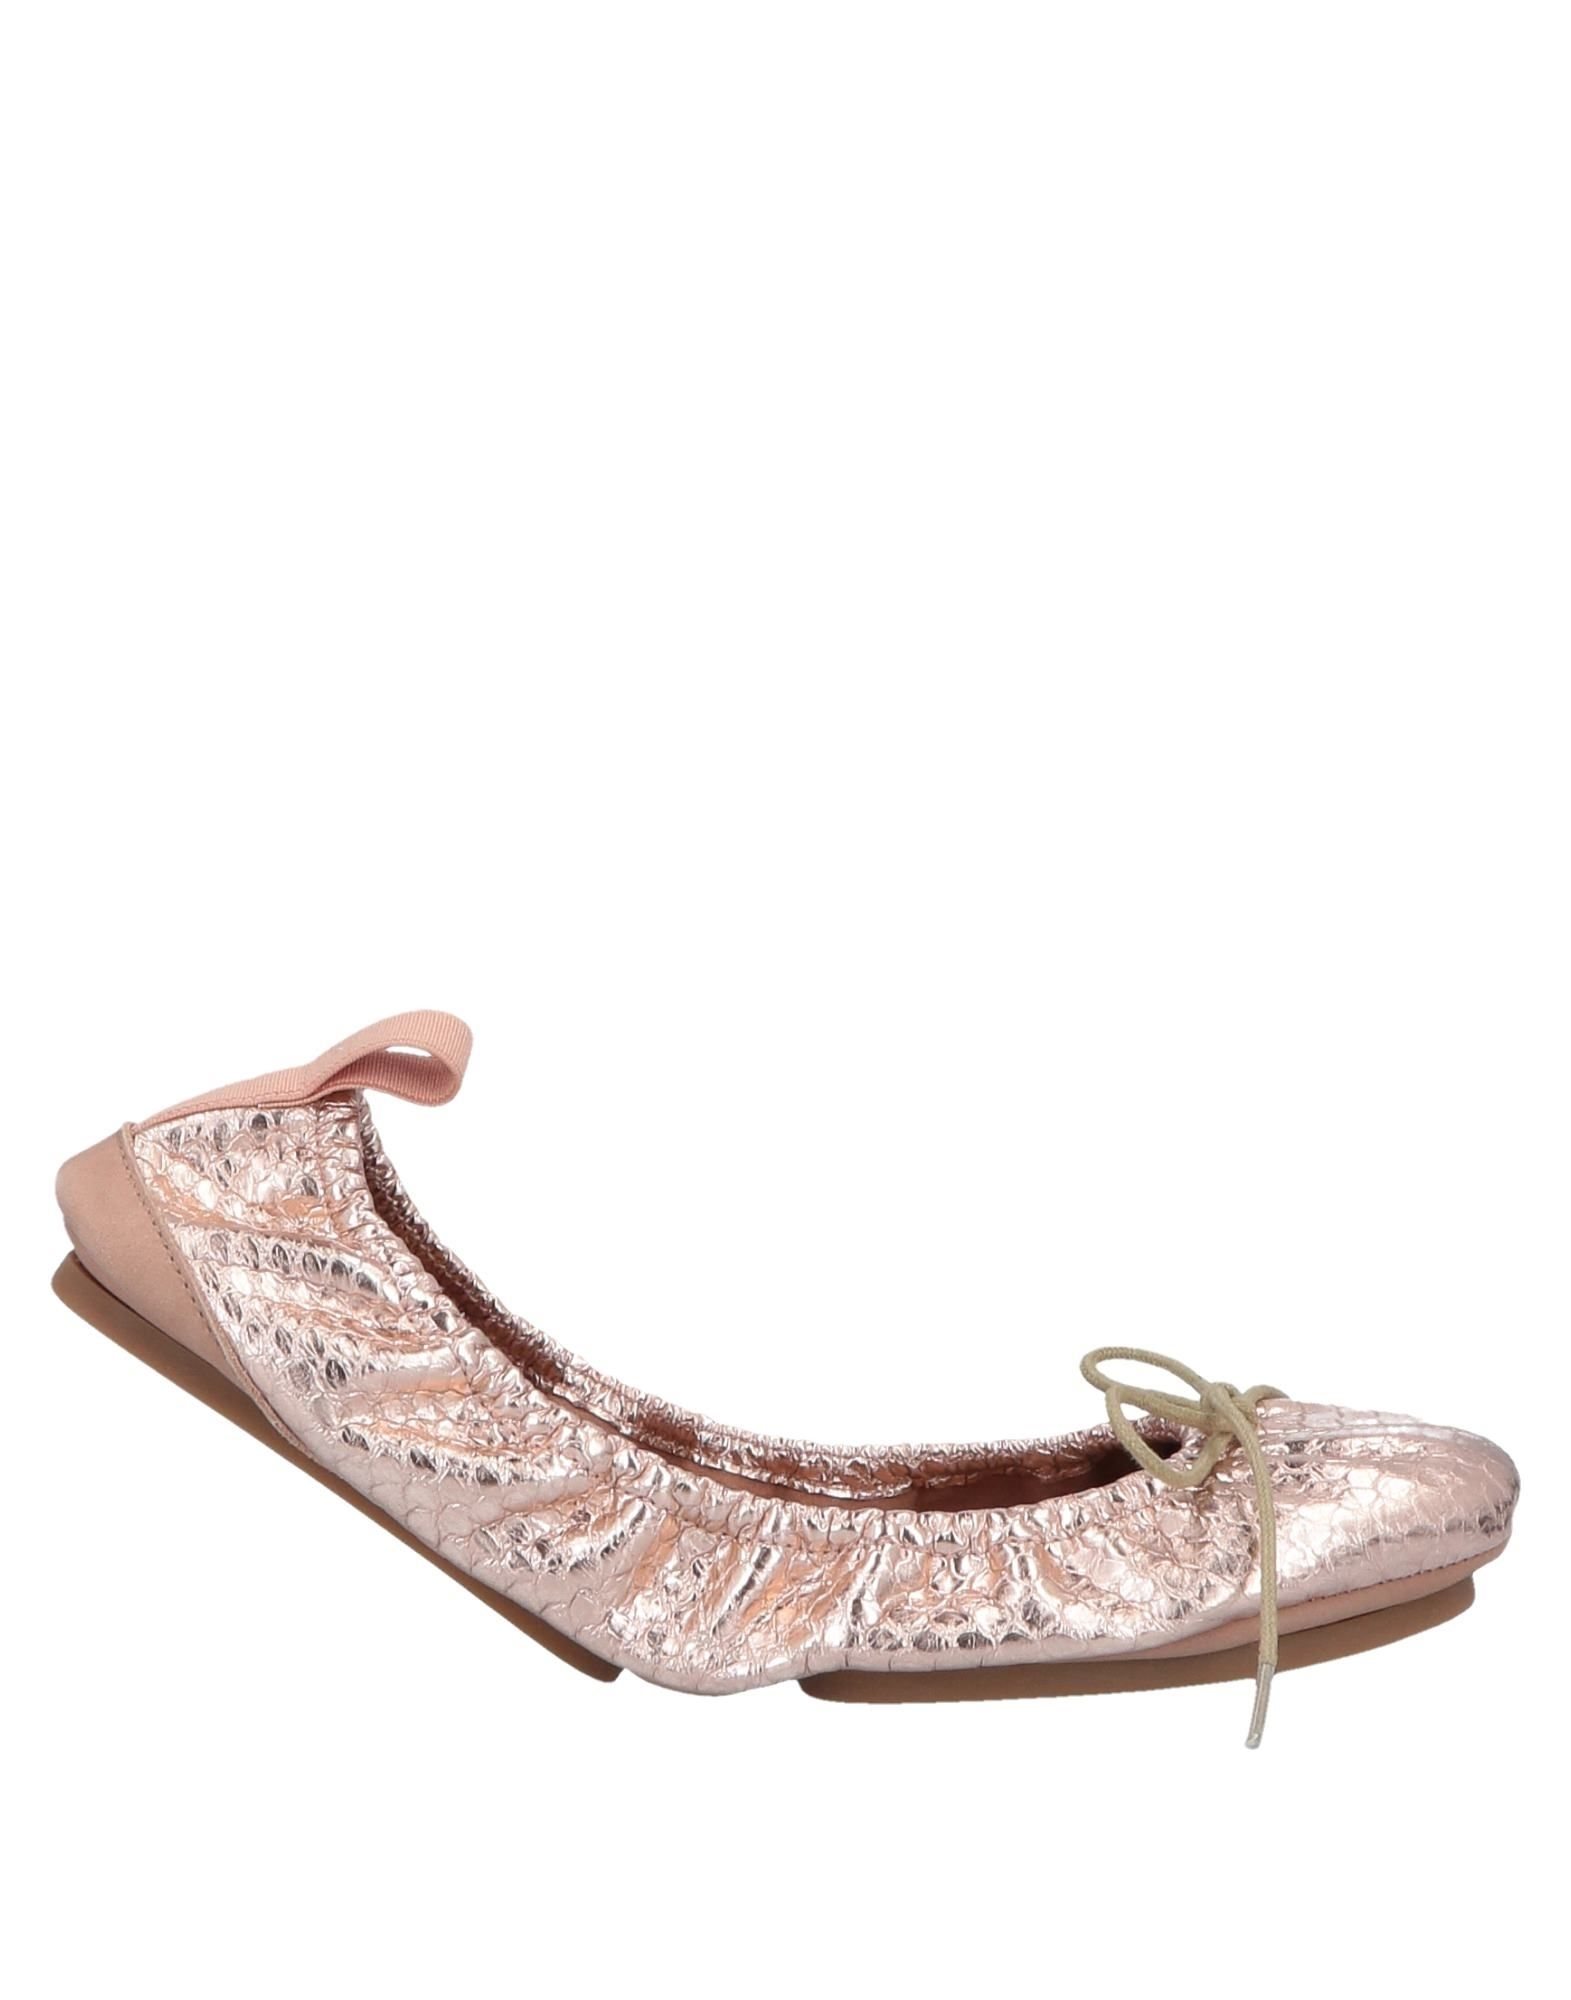 Ballerines See By Chloé Femme - Ballerines See By Chloé   - 11686501PS